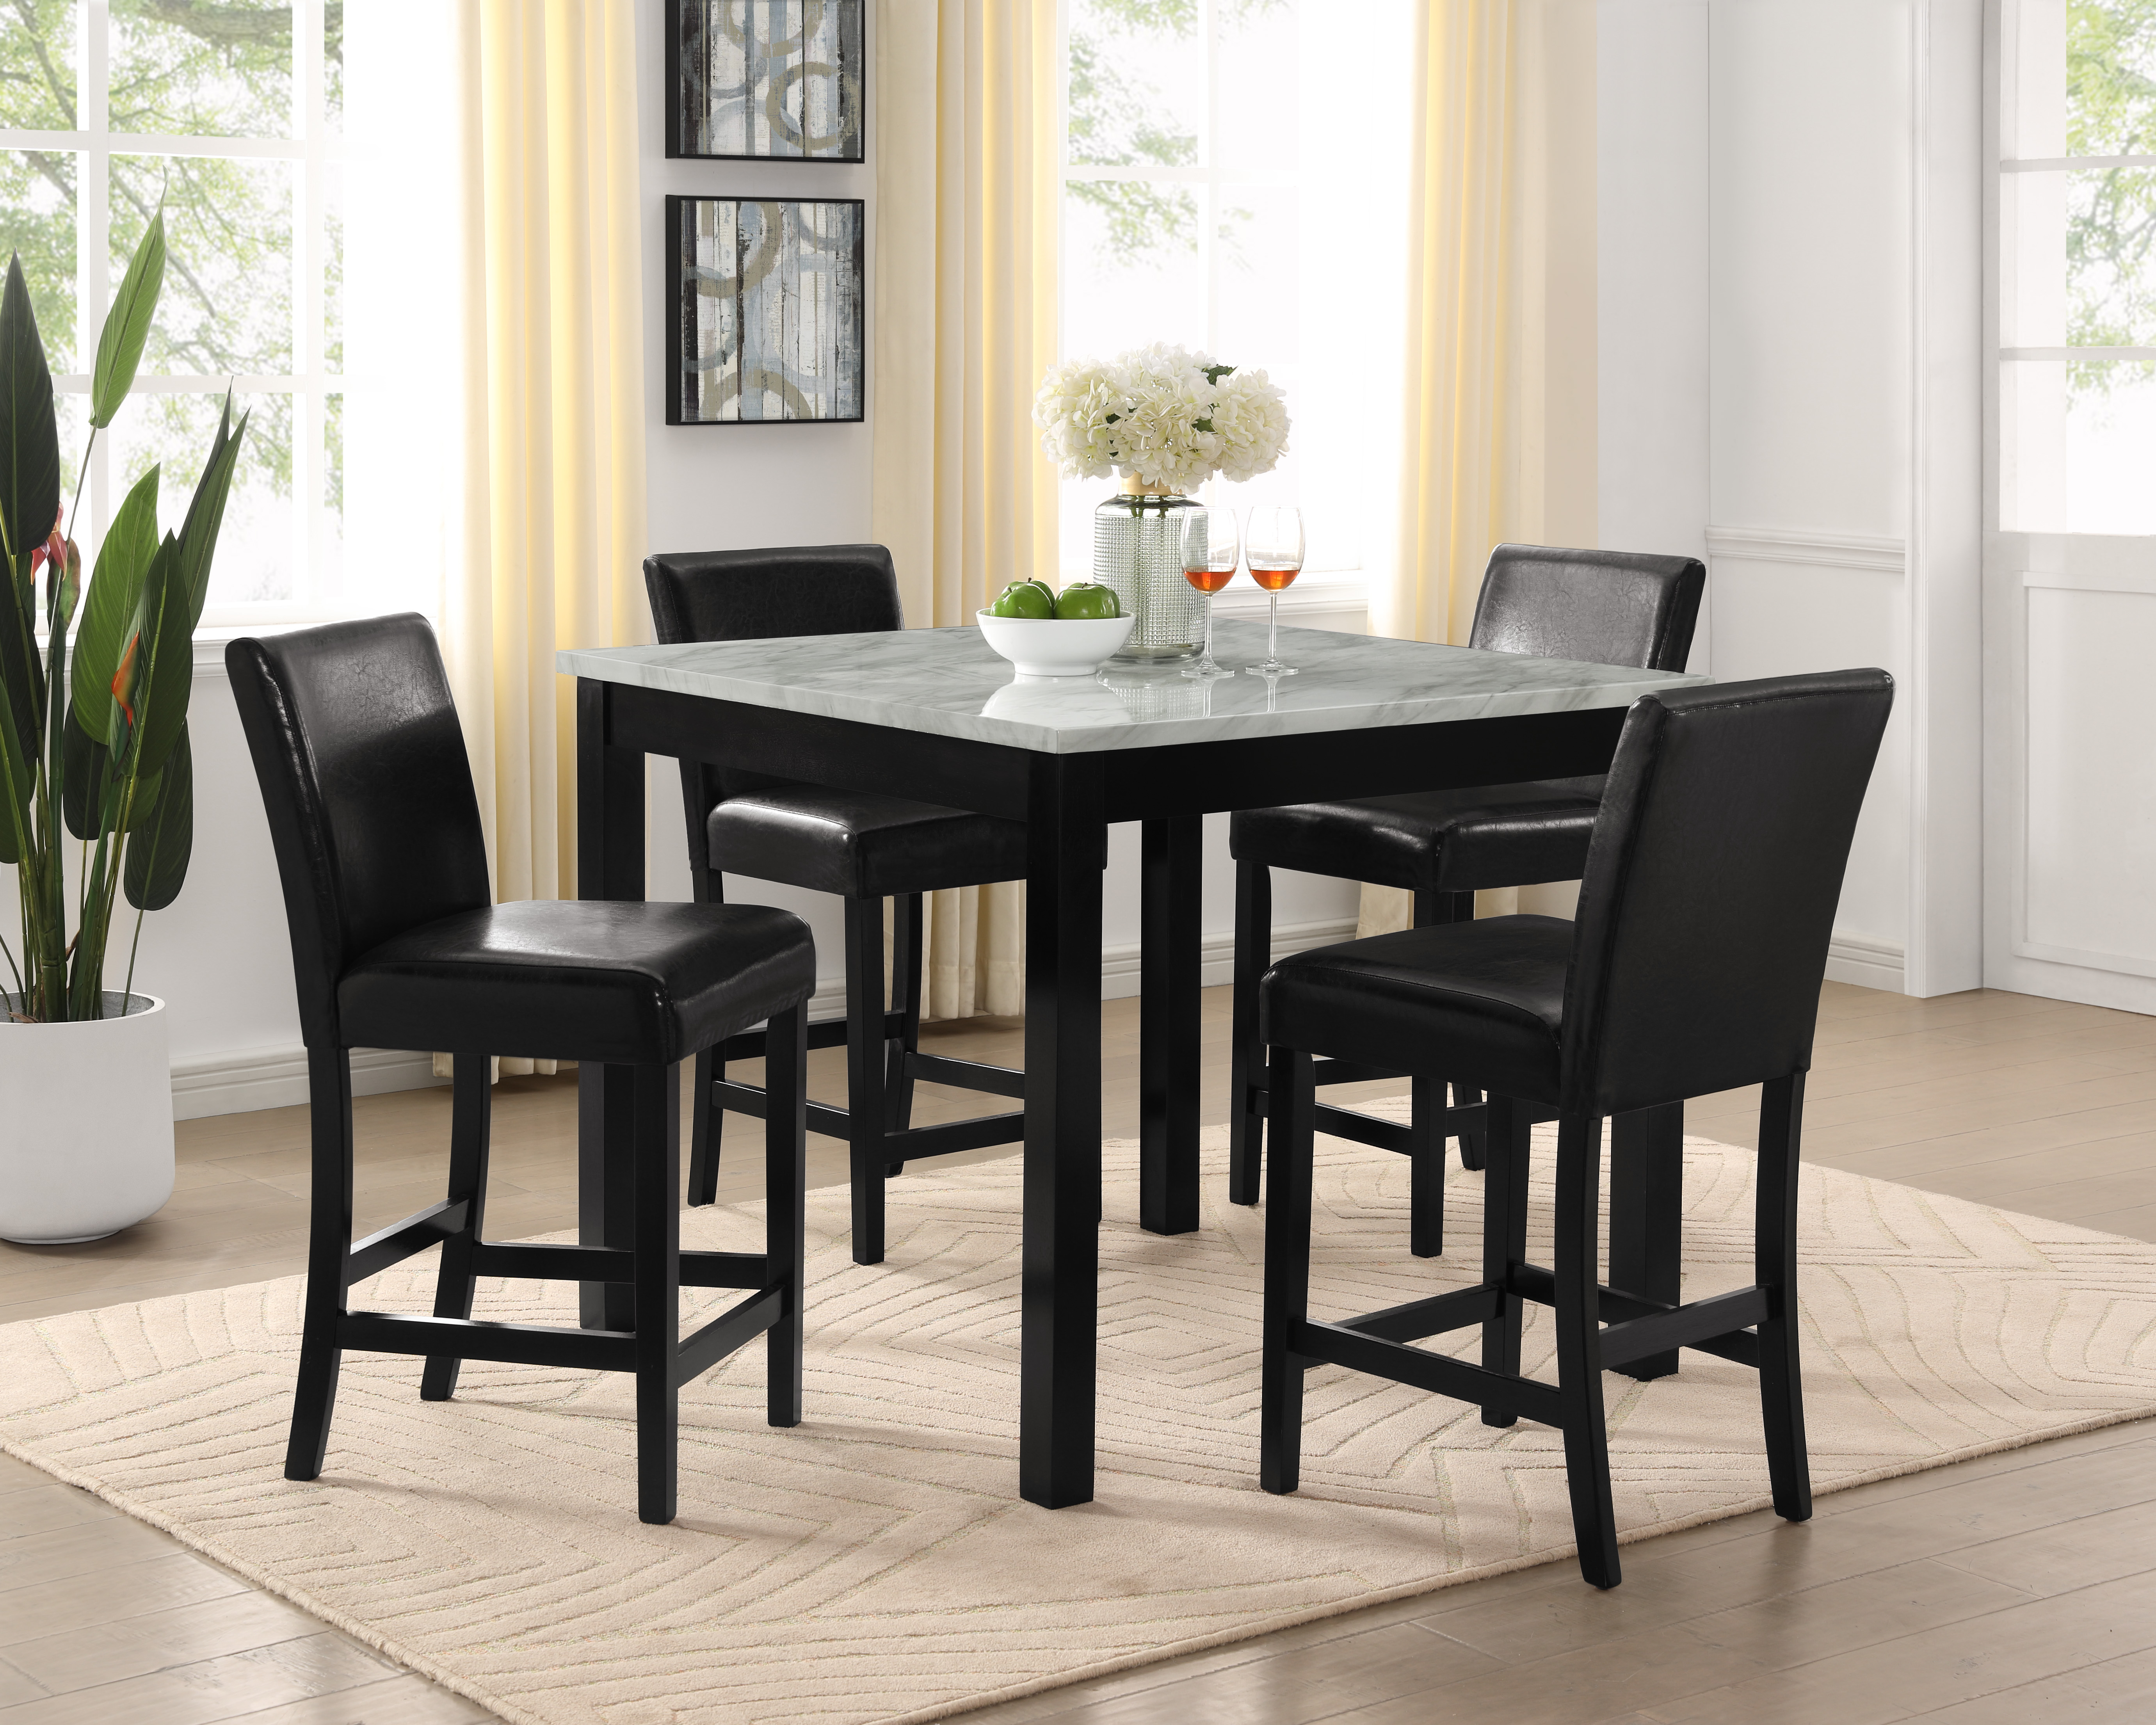 Lennon 5-Piece Counter Height Table Set by Crown Mark at Dream Home Interiors